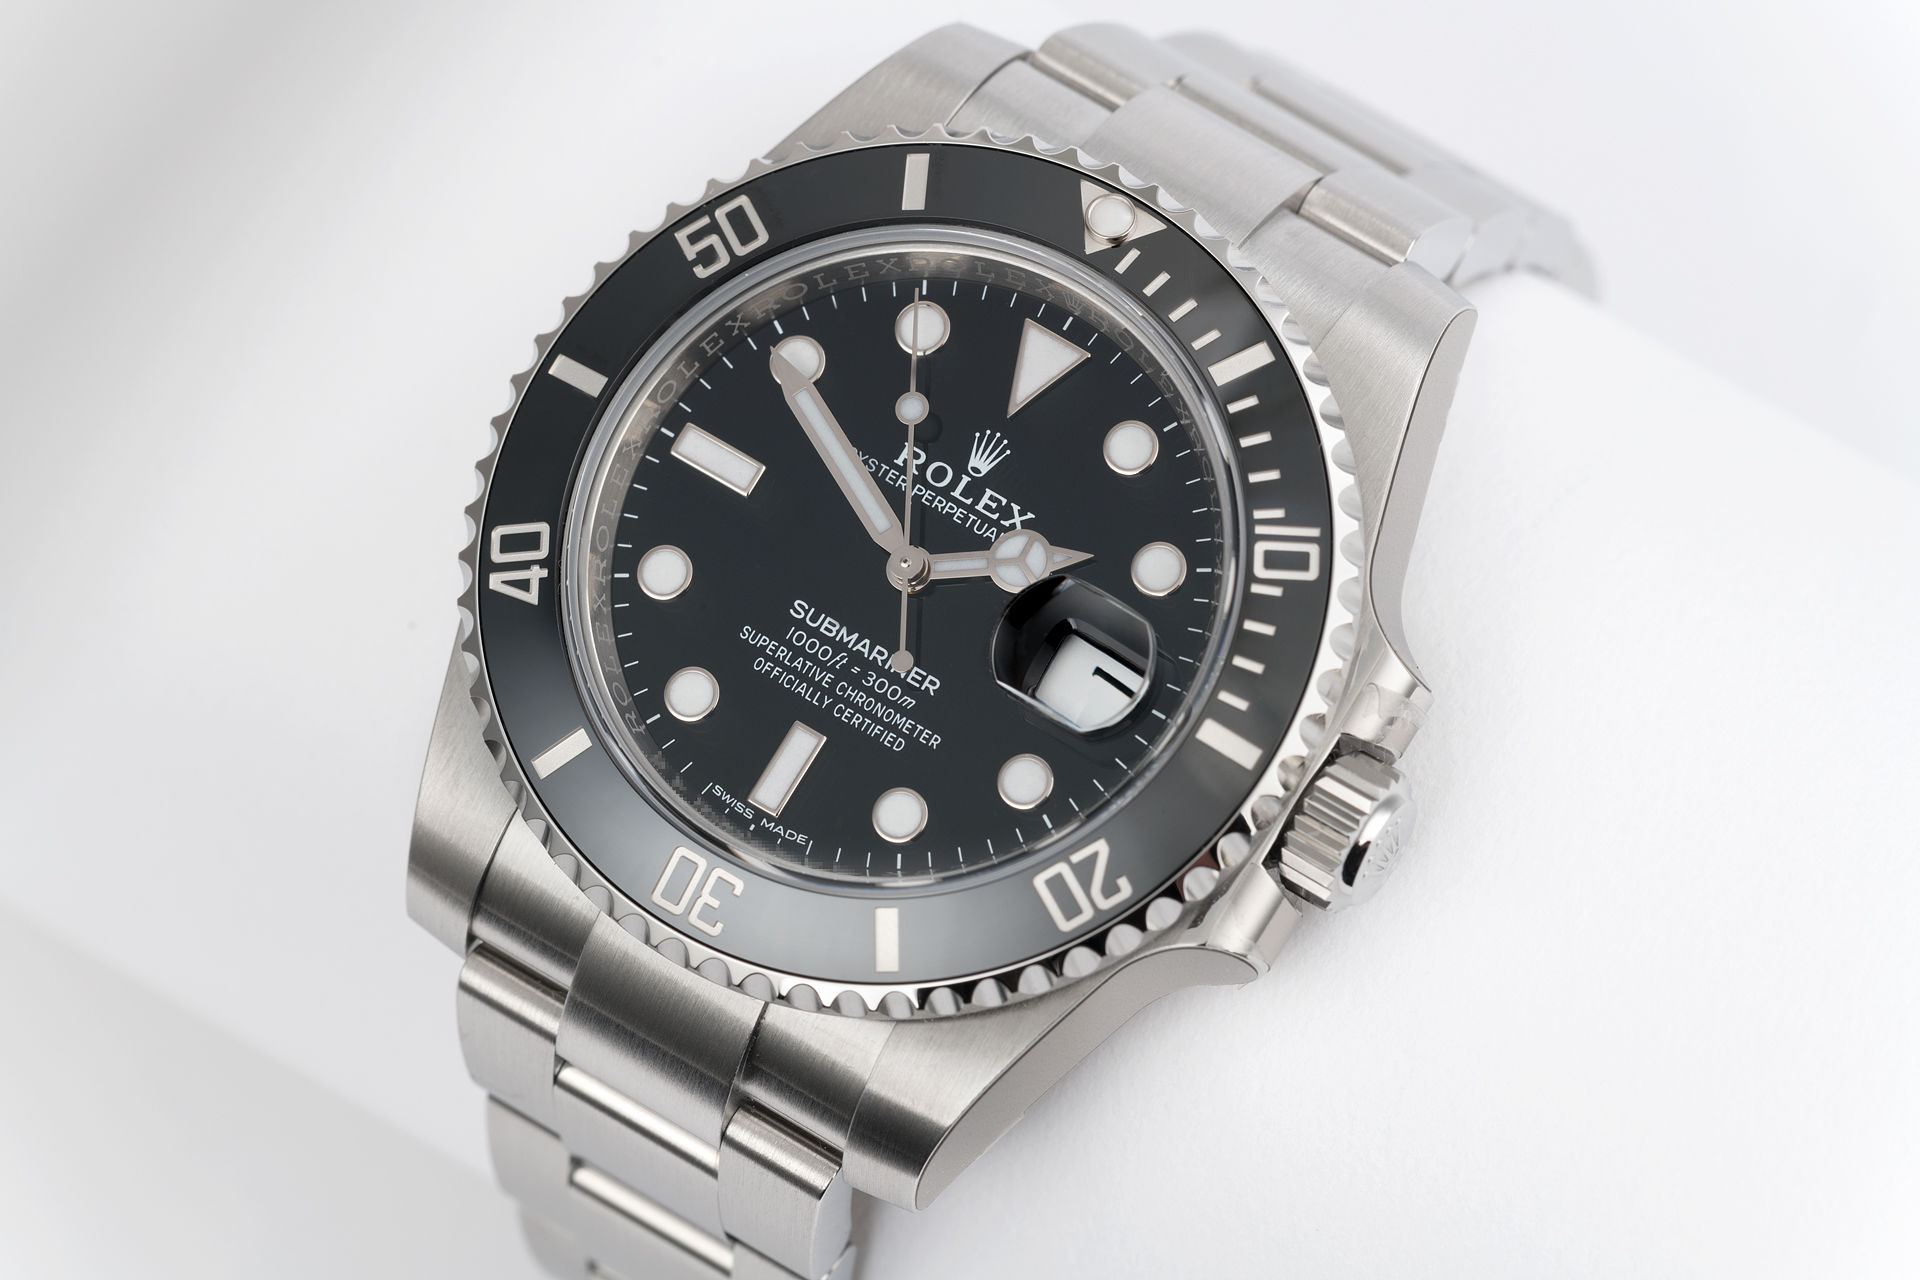 ref 116610LN | Brand New '5 year Warranty' | Rolex Submariner Date